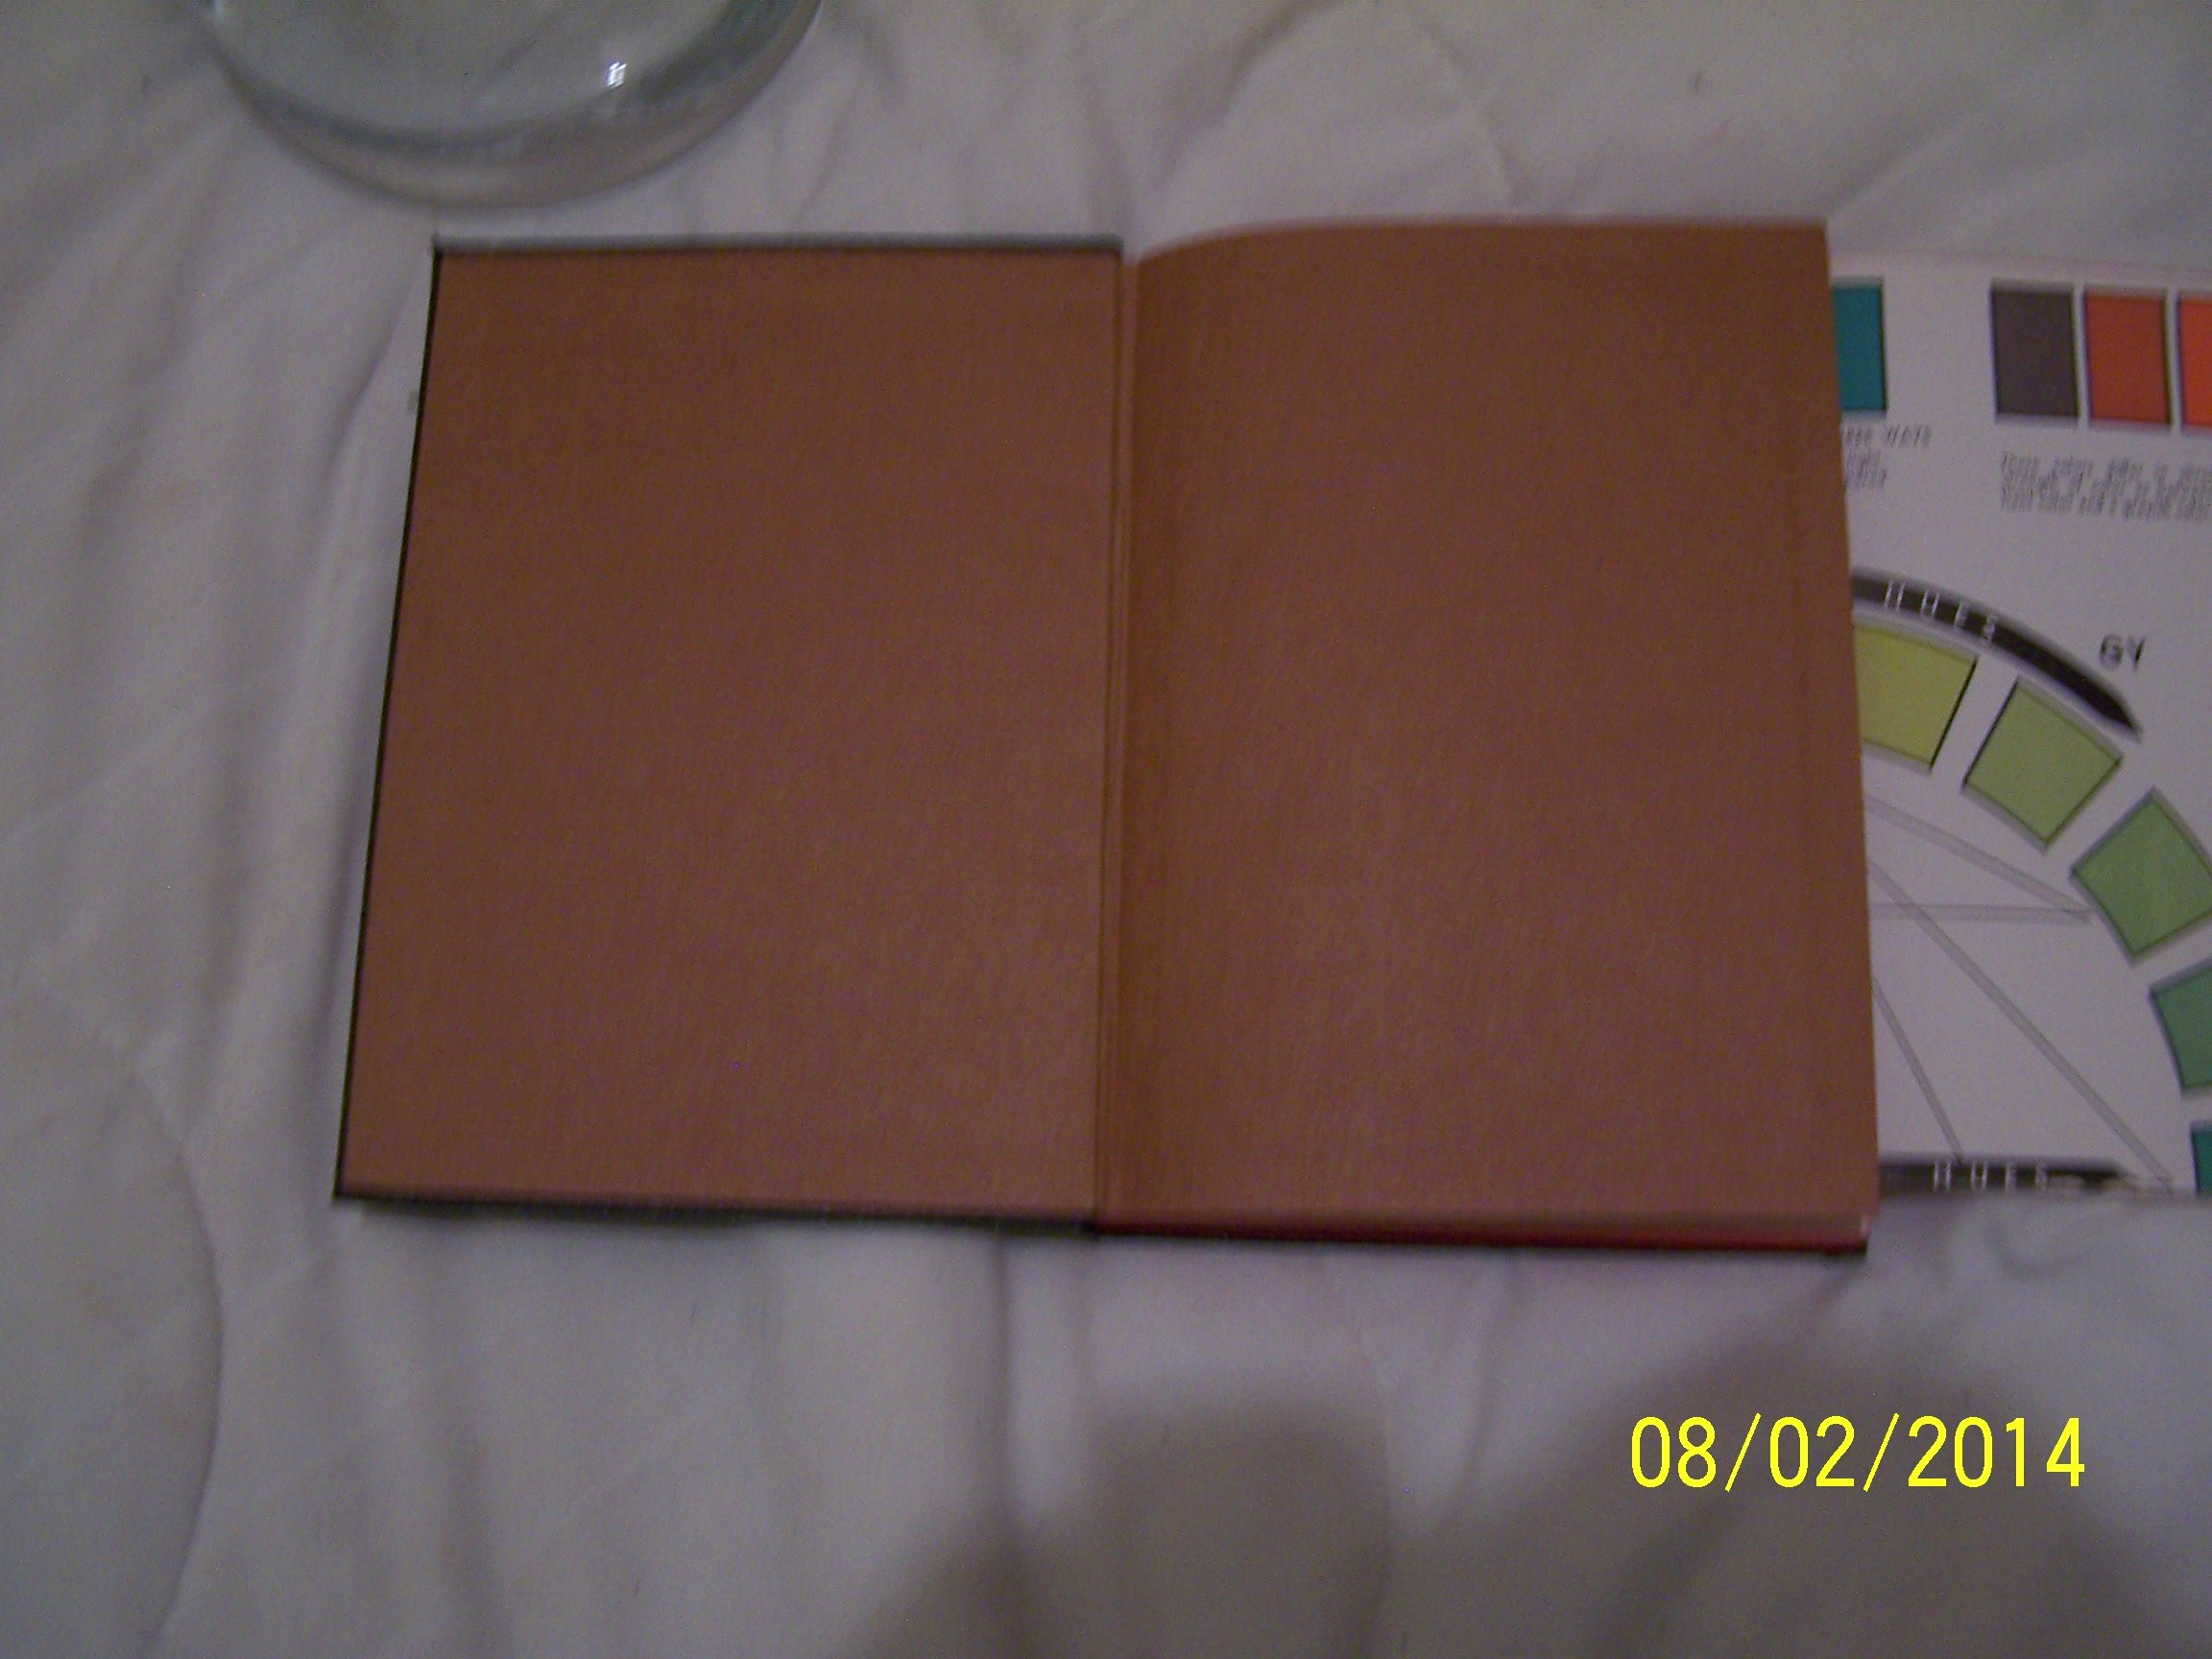 Painting and Decorating Craftsman's Manual and Textbook: Painting &  Decorating Contractor's of America: Amazon.com: Books